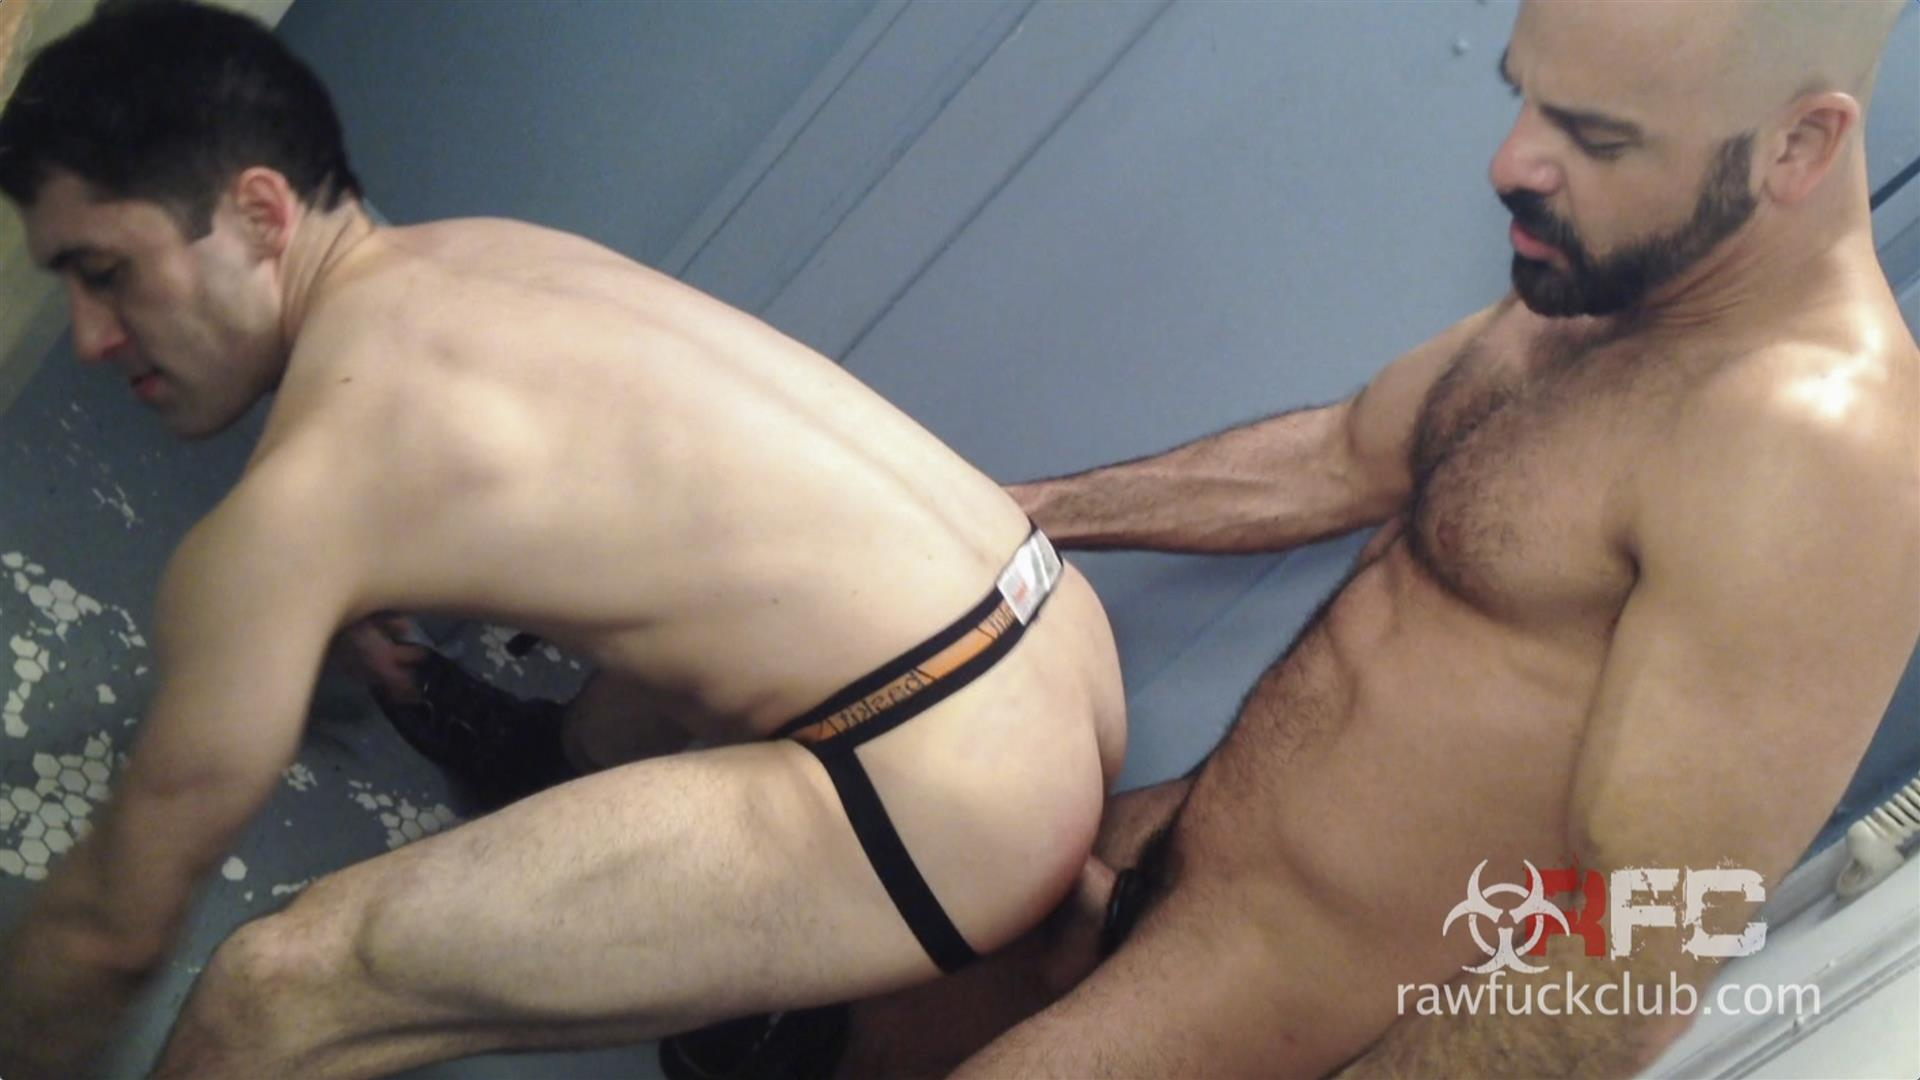 Raw Fuck Club Adam Russo and Kyle Ferris Anonymous Bareback Sex Amateur Gay Porn 6 Adam Russo Barebacking A Stranger In A Dirty Bar Bathroom